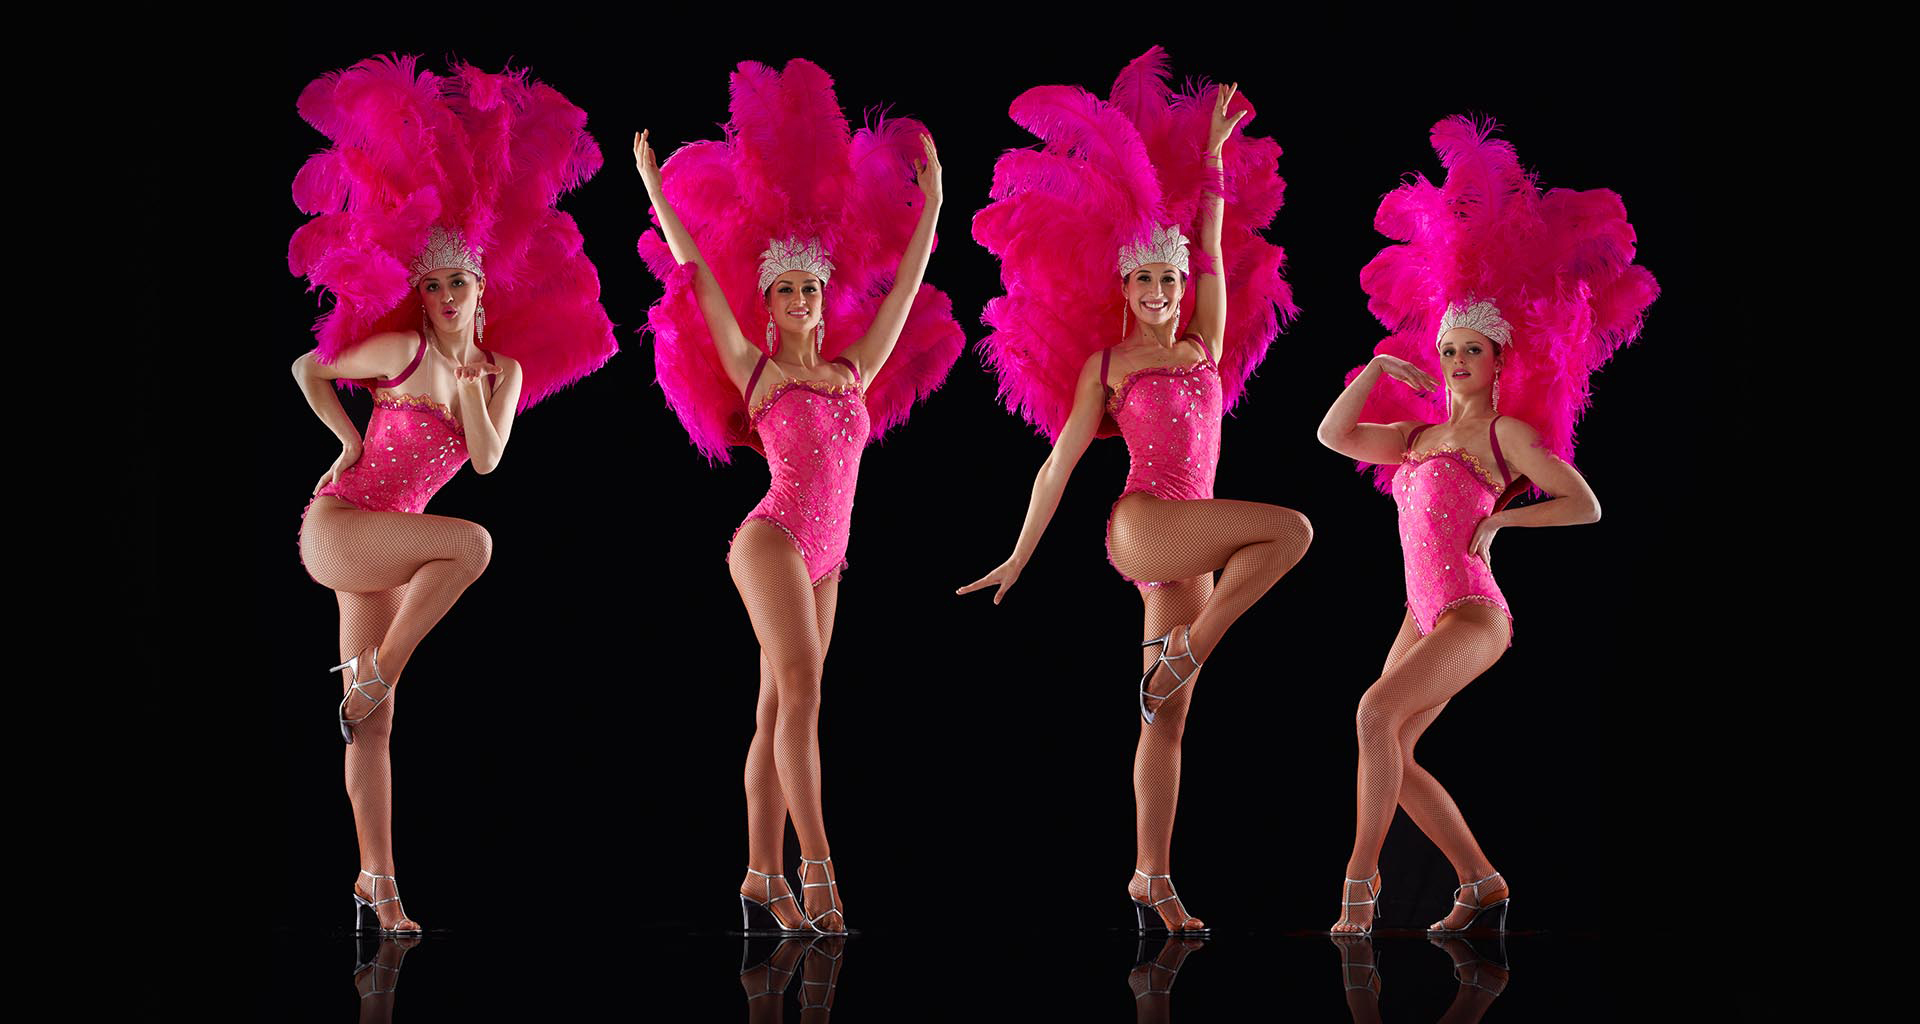 Auckland Siren dancers, showgirls for meet and greet or Las Vagas theme dance shows. www.talentonline.co.nz